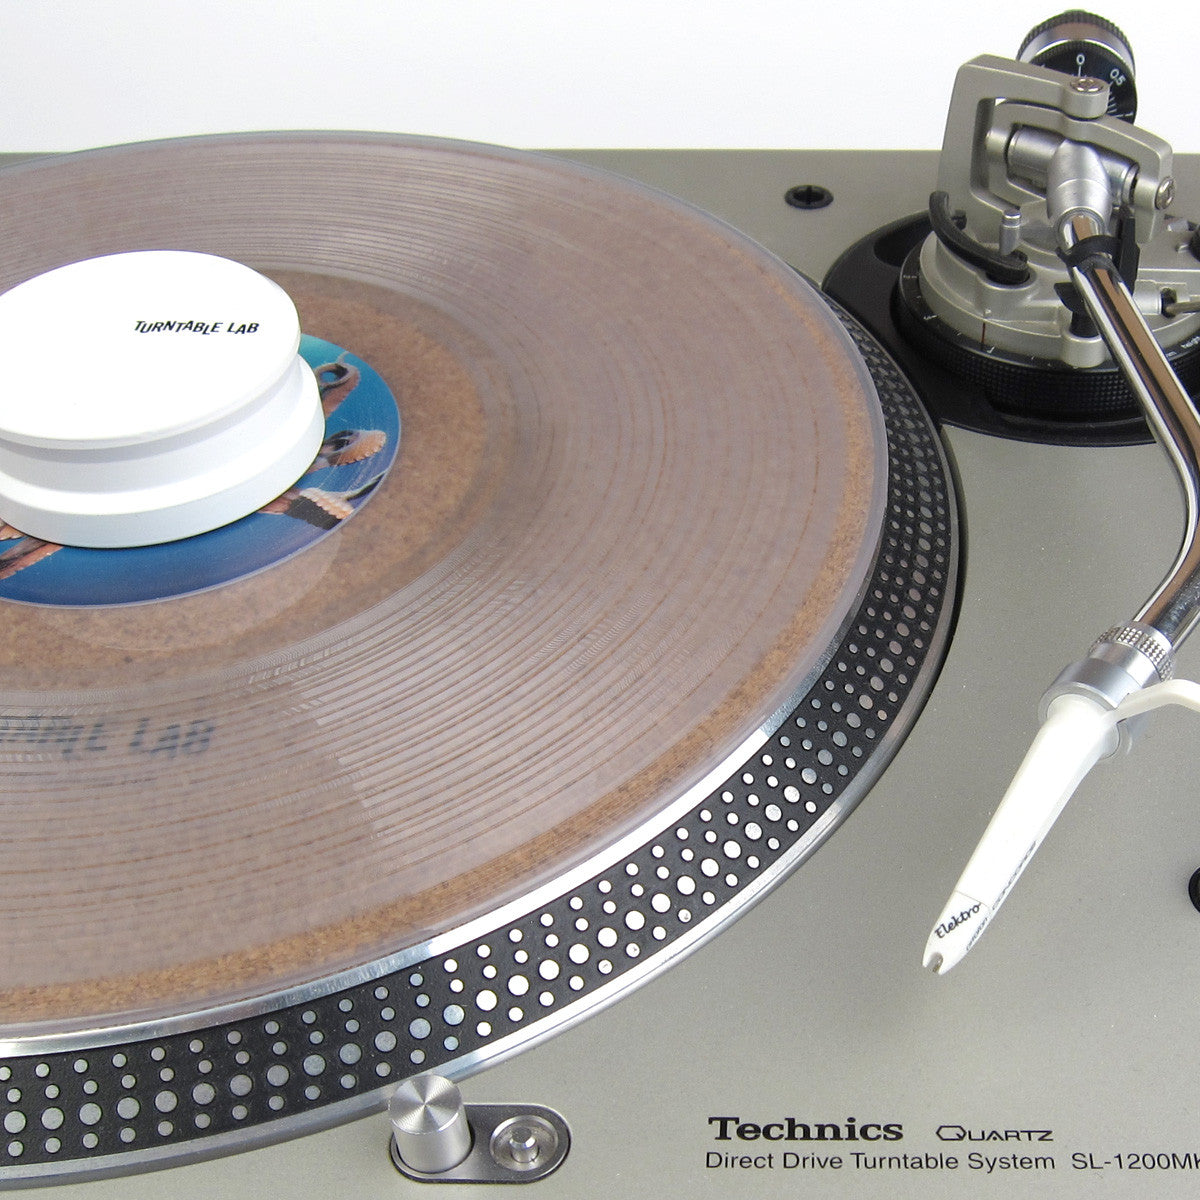 Turntable Lab: Cork Mat + Record Weight Package 3